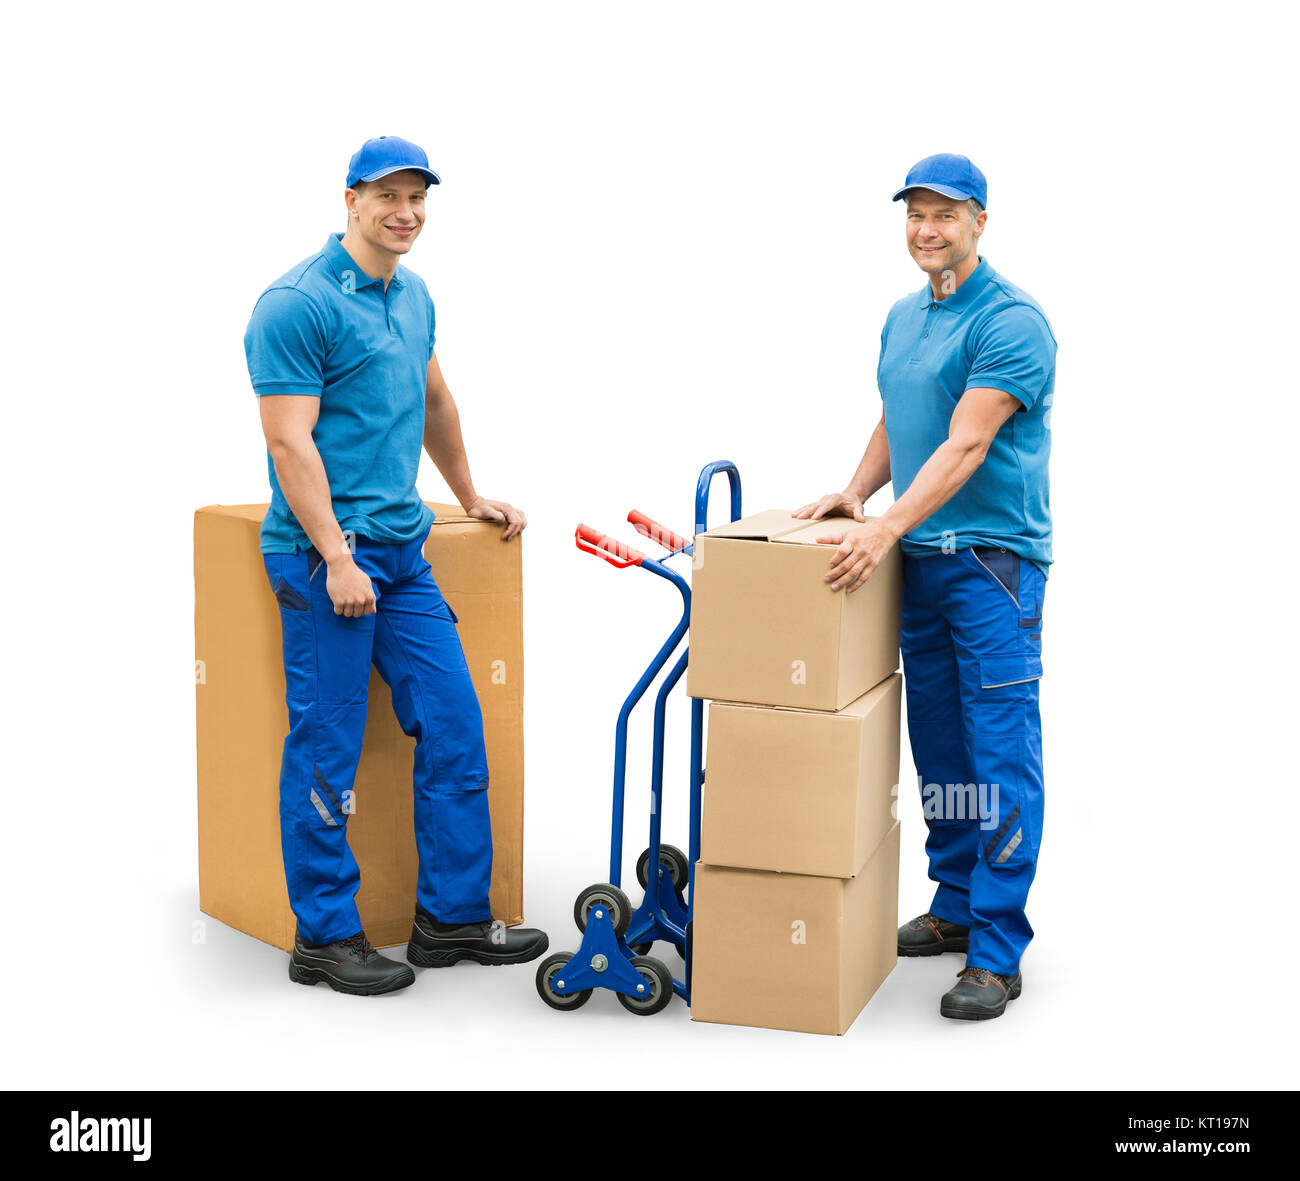 Courier Men Standing With Cardboard Boxes - Stock Image